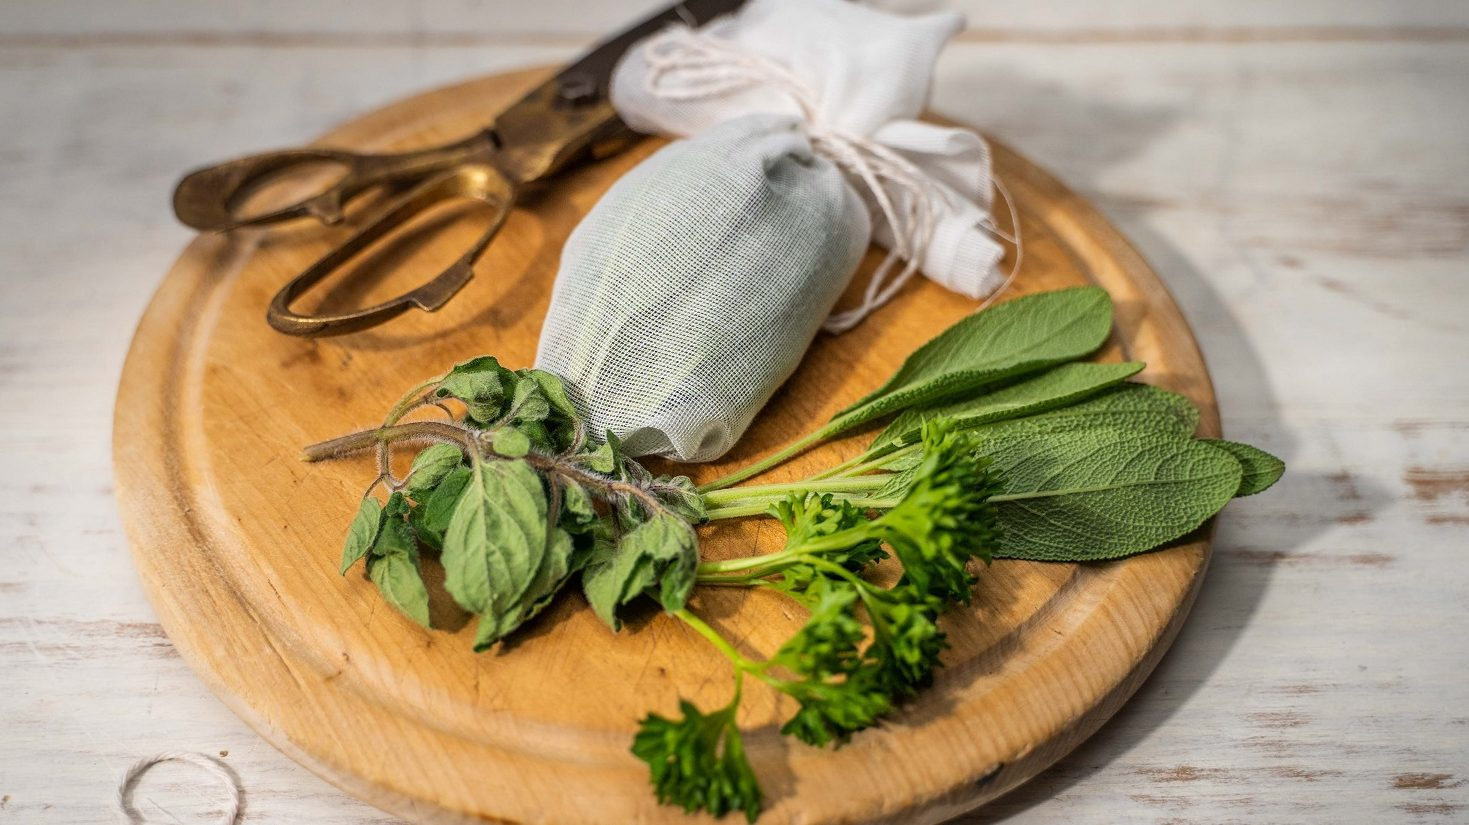 Some green herbs, a pair of scissors and a white parcel on round wooden board.